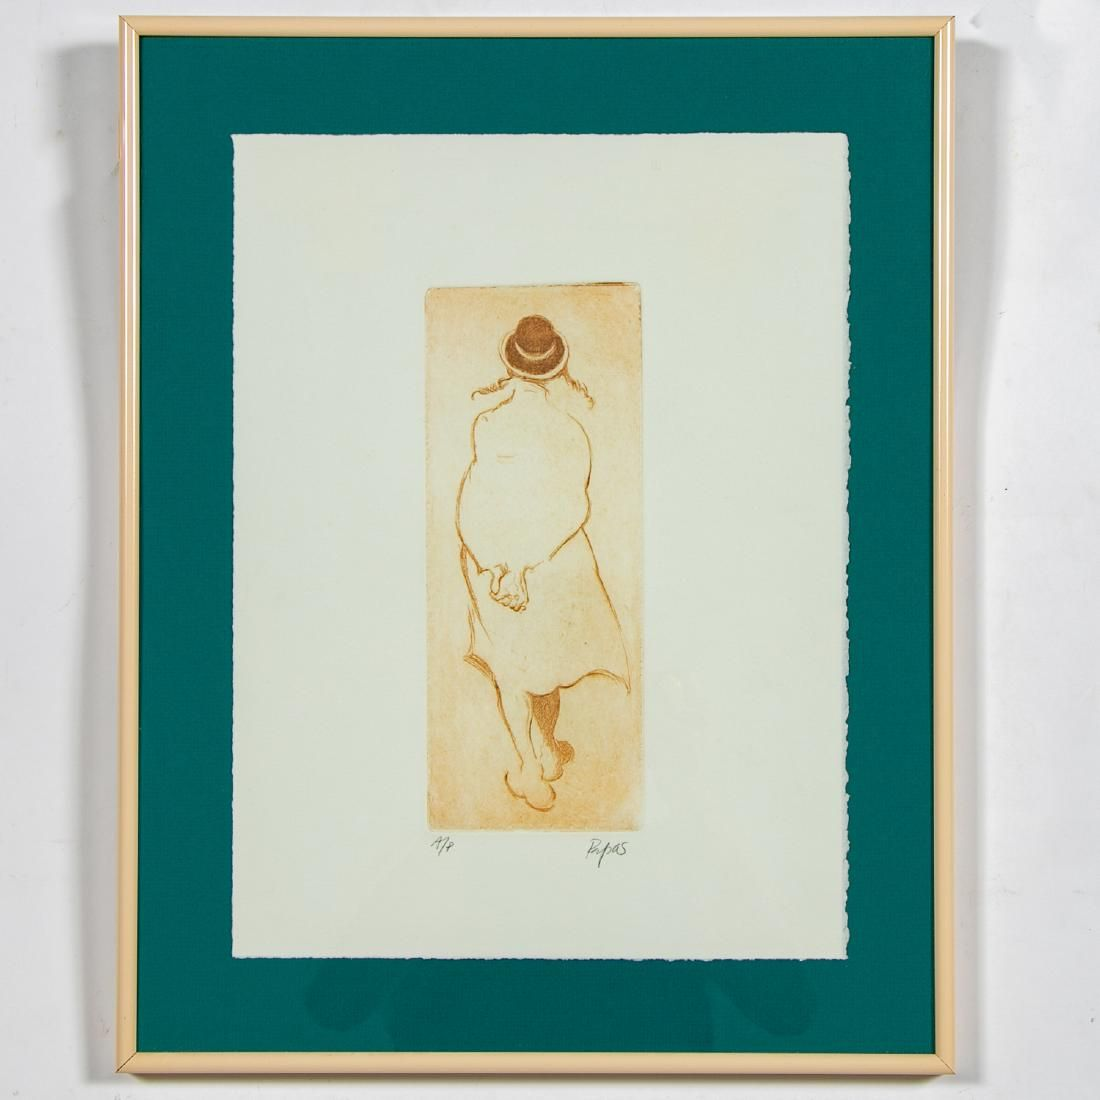 Small William Papas Pencil Signed Aquatint Etching